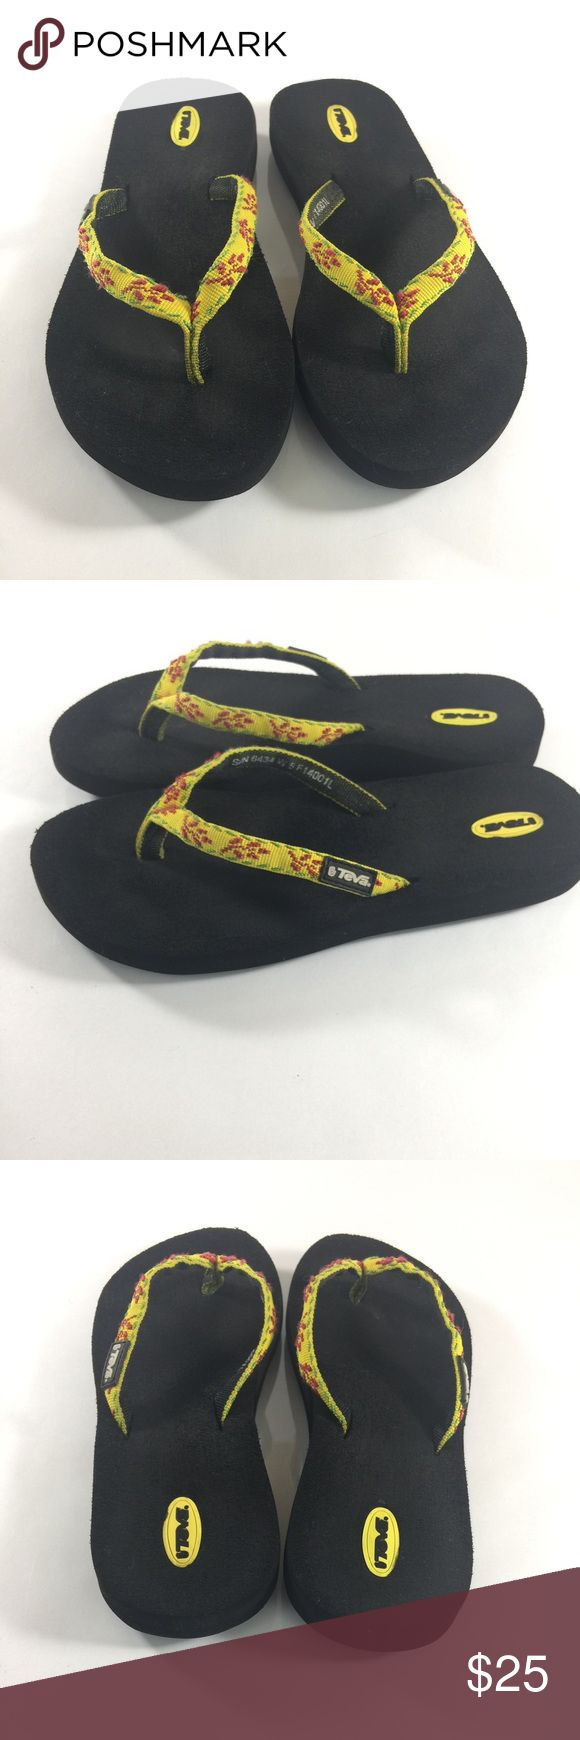 Teva Flip Flop Sandals Yellow Size 5 Up for sale is this great pair of Teva embroidered sandals! Bright yellow with red and green detail!  Women's Size 5  CONDITION: Good Condition! Some signs of normal wear. Teva Shoes Sandals